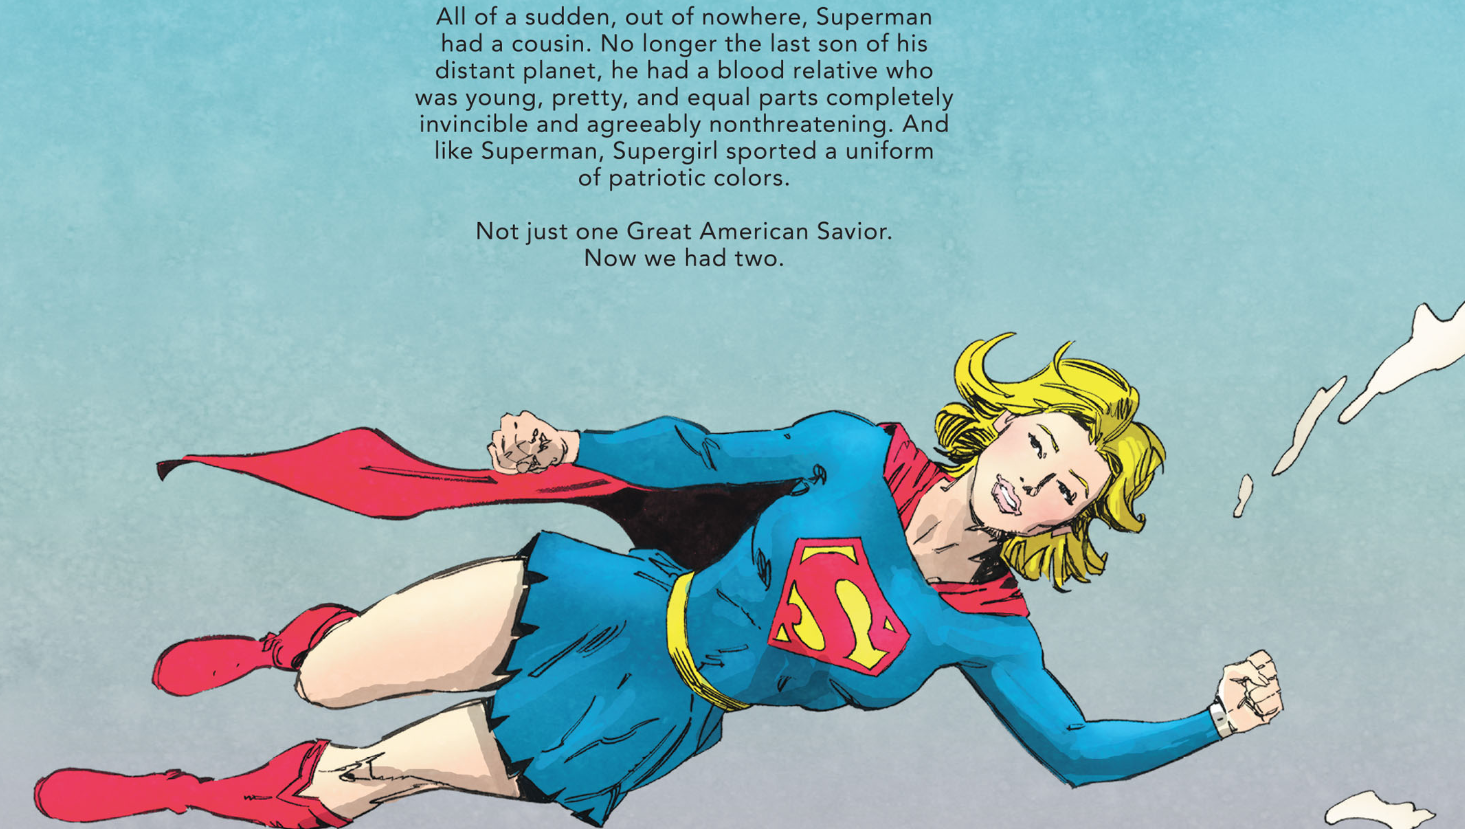 Supergirl in The Other History of the DC Universe